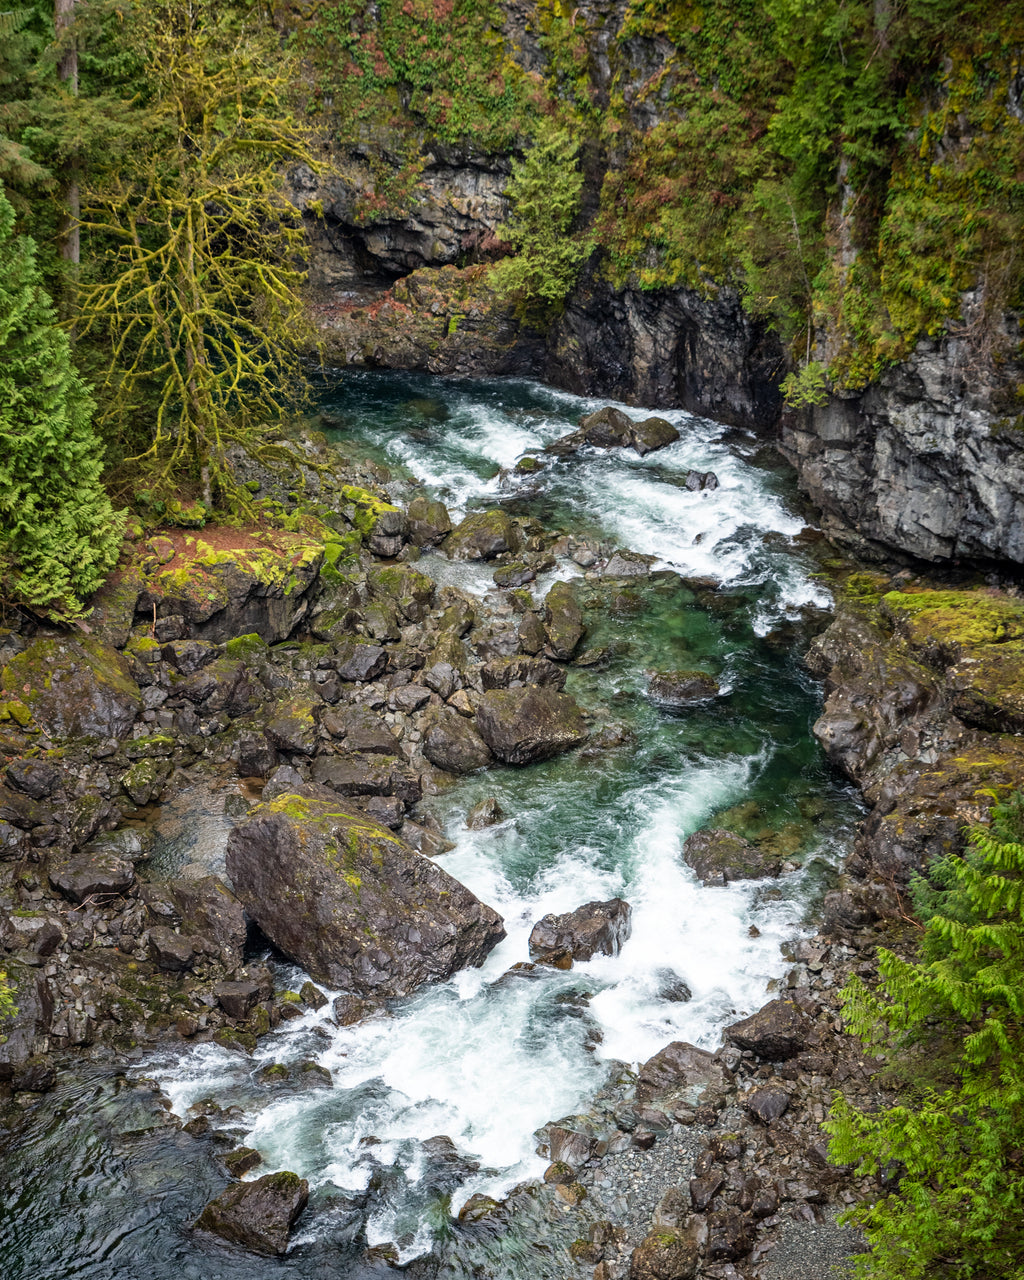 Campbell River rapids and whitewater below Elk Falls